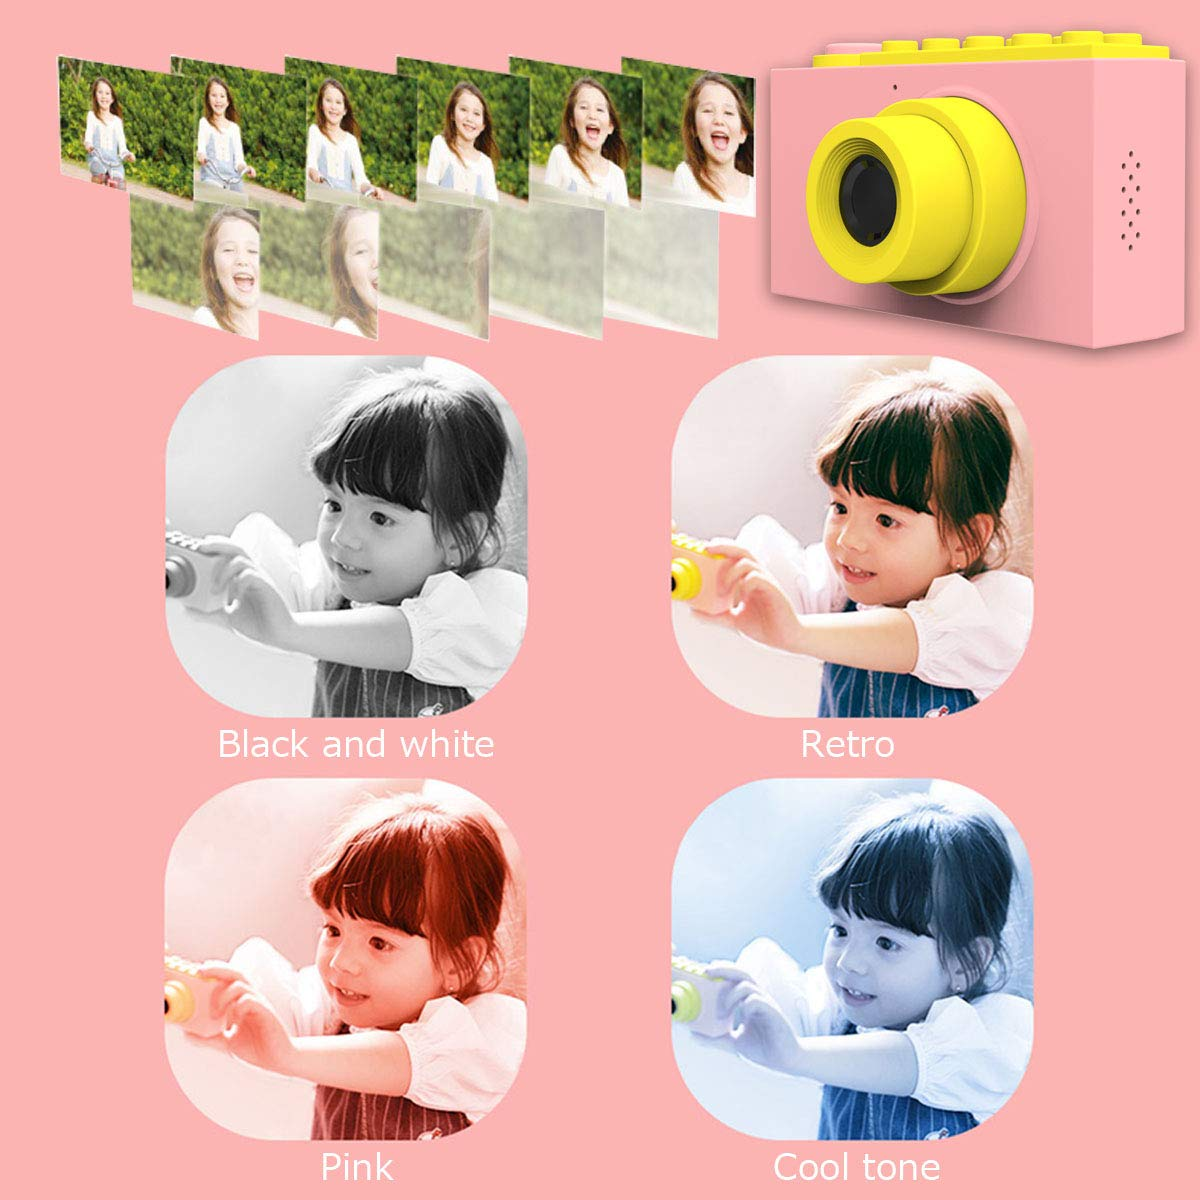 MAGENDARA Kids Digital Camera HD 1080P Children Camera with 2.0 Inch Screen Toy Camera for Boys Girls Birthday with Waterproof Case-Pink by MAGENDARA (Image #6)